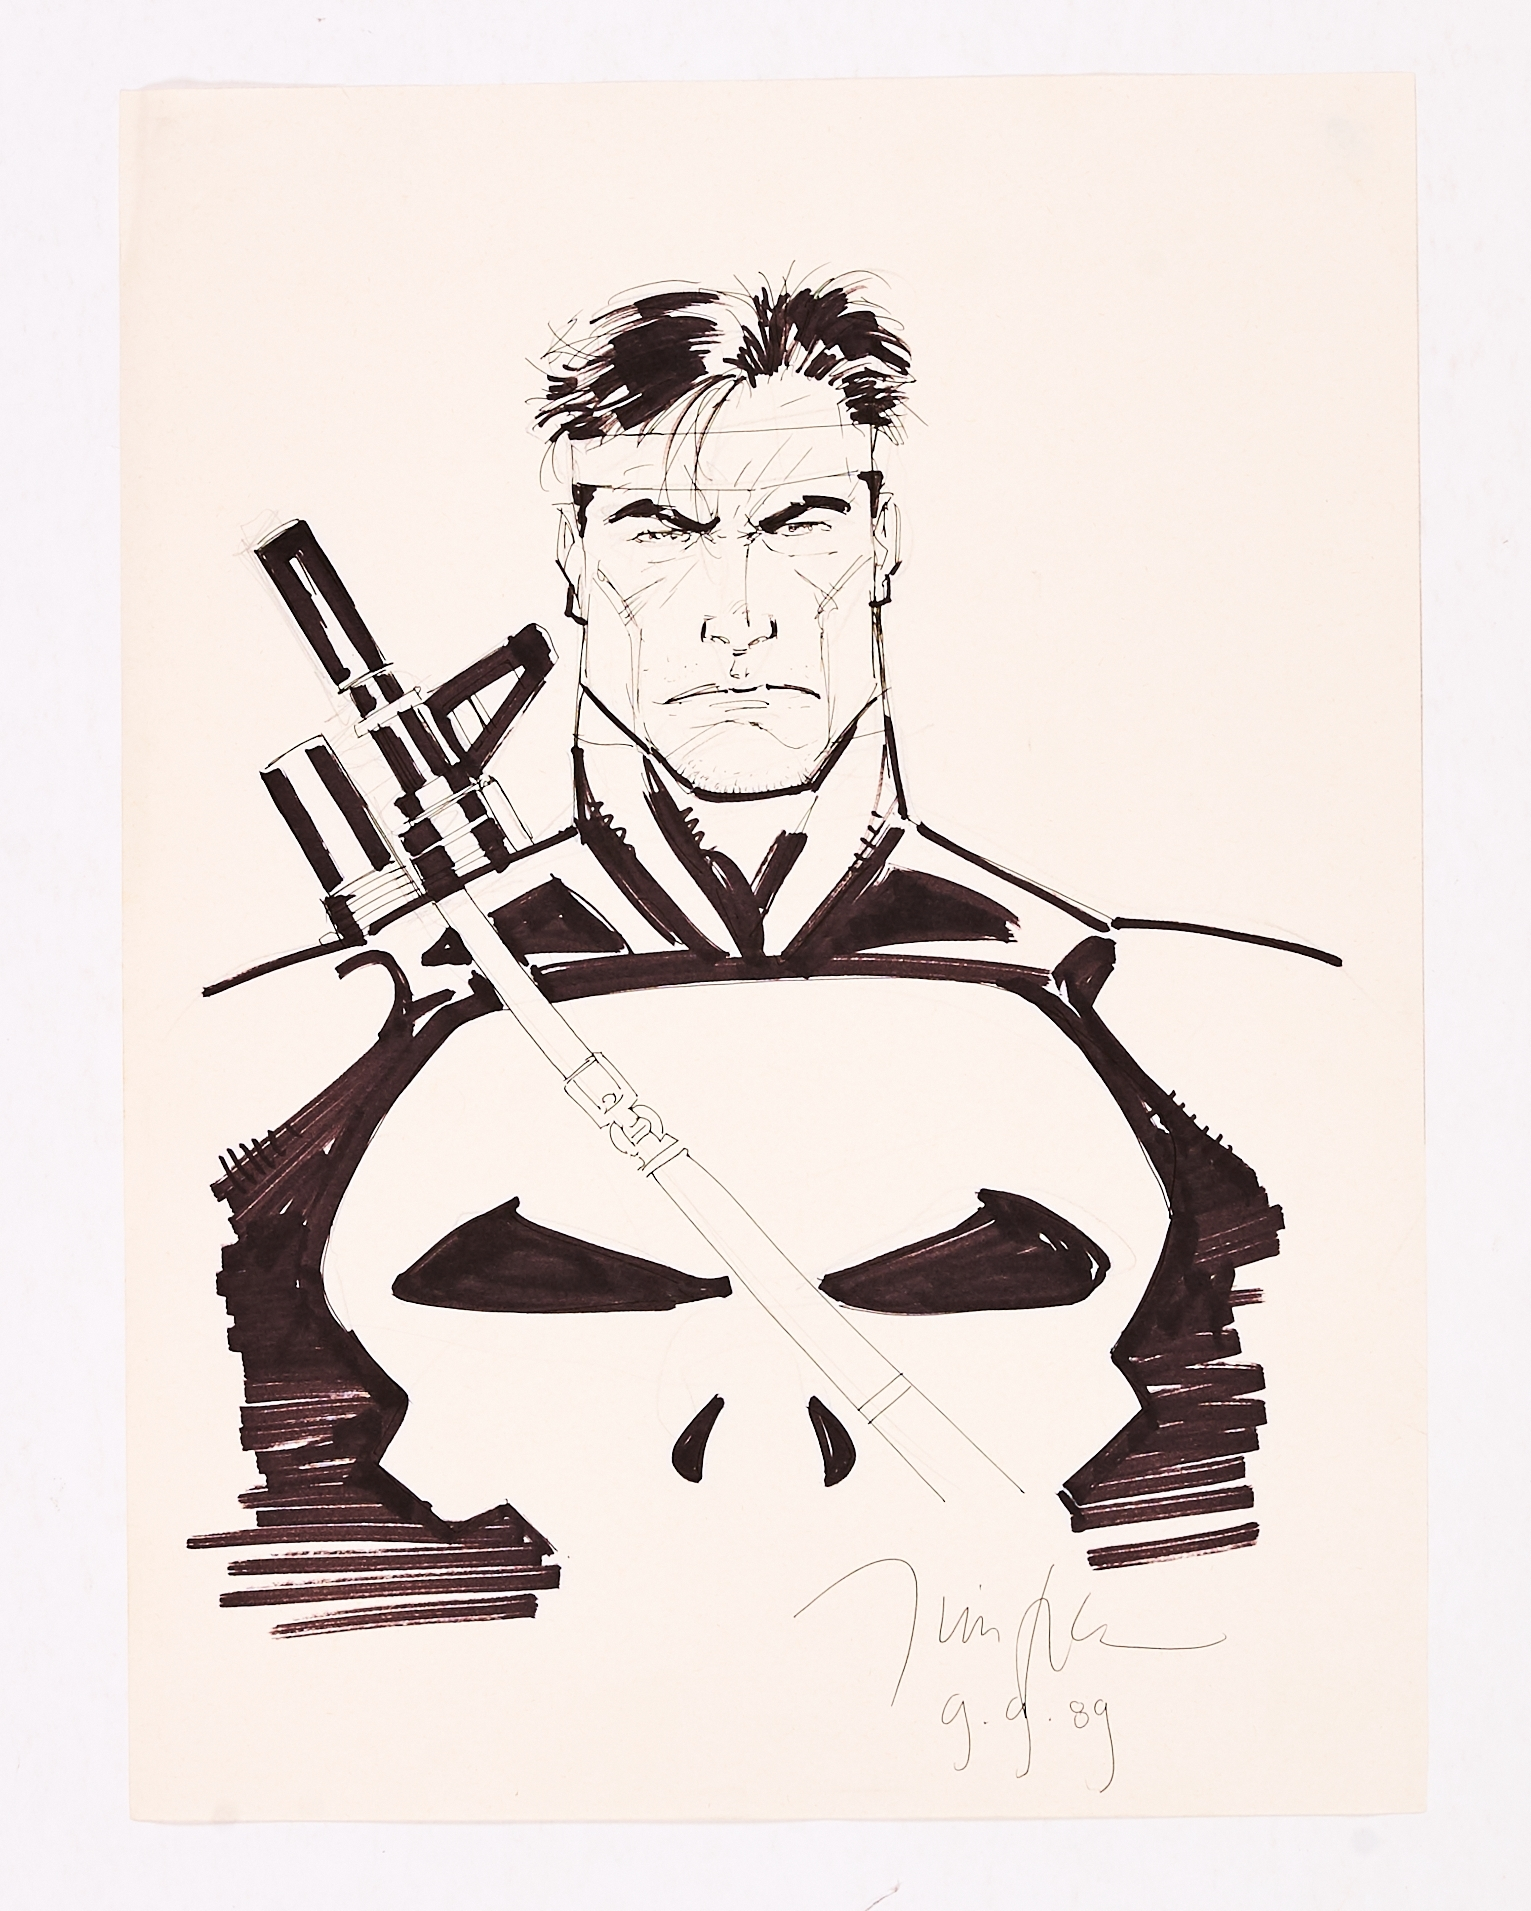 The Punisher Sketch drawn and signed by Jim Lee (9.9.'89). Ink and marker pen on paper. 15 x 11 ins